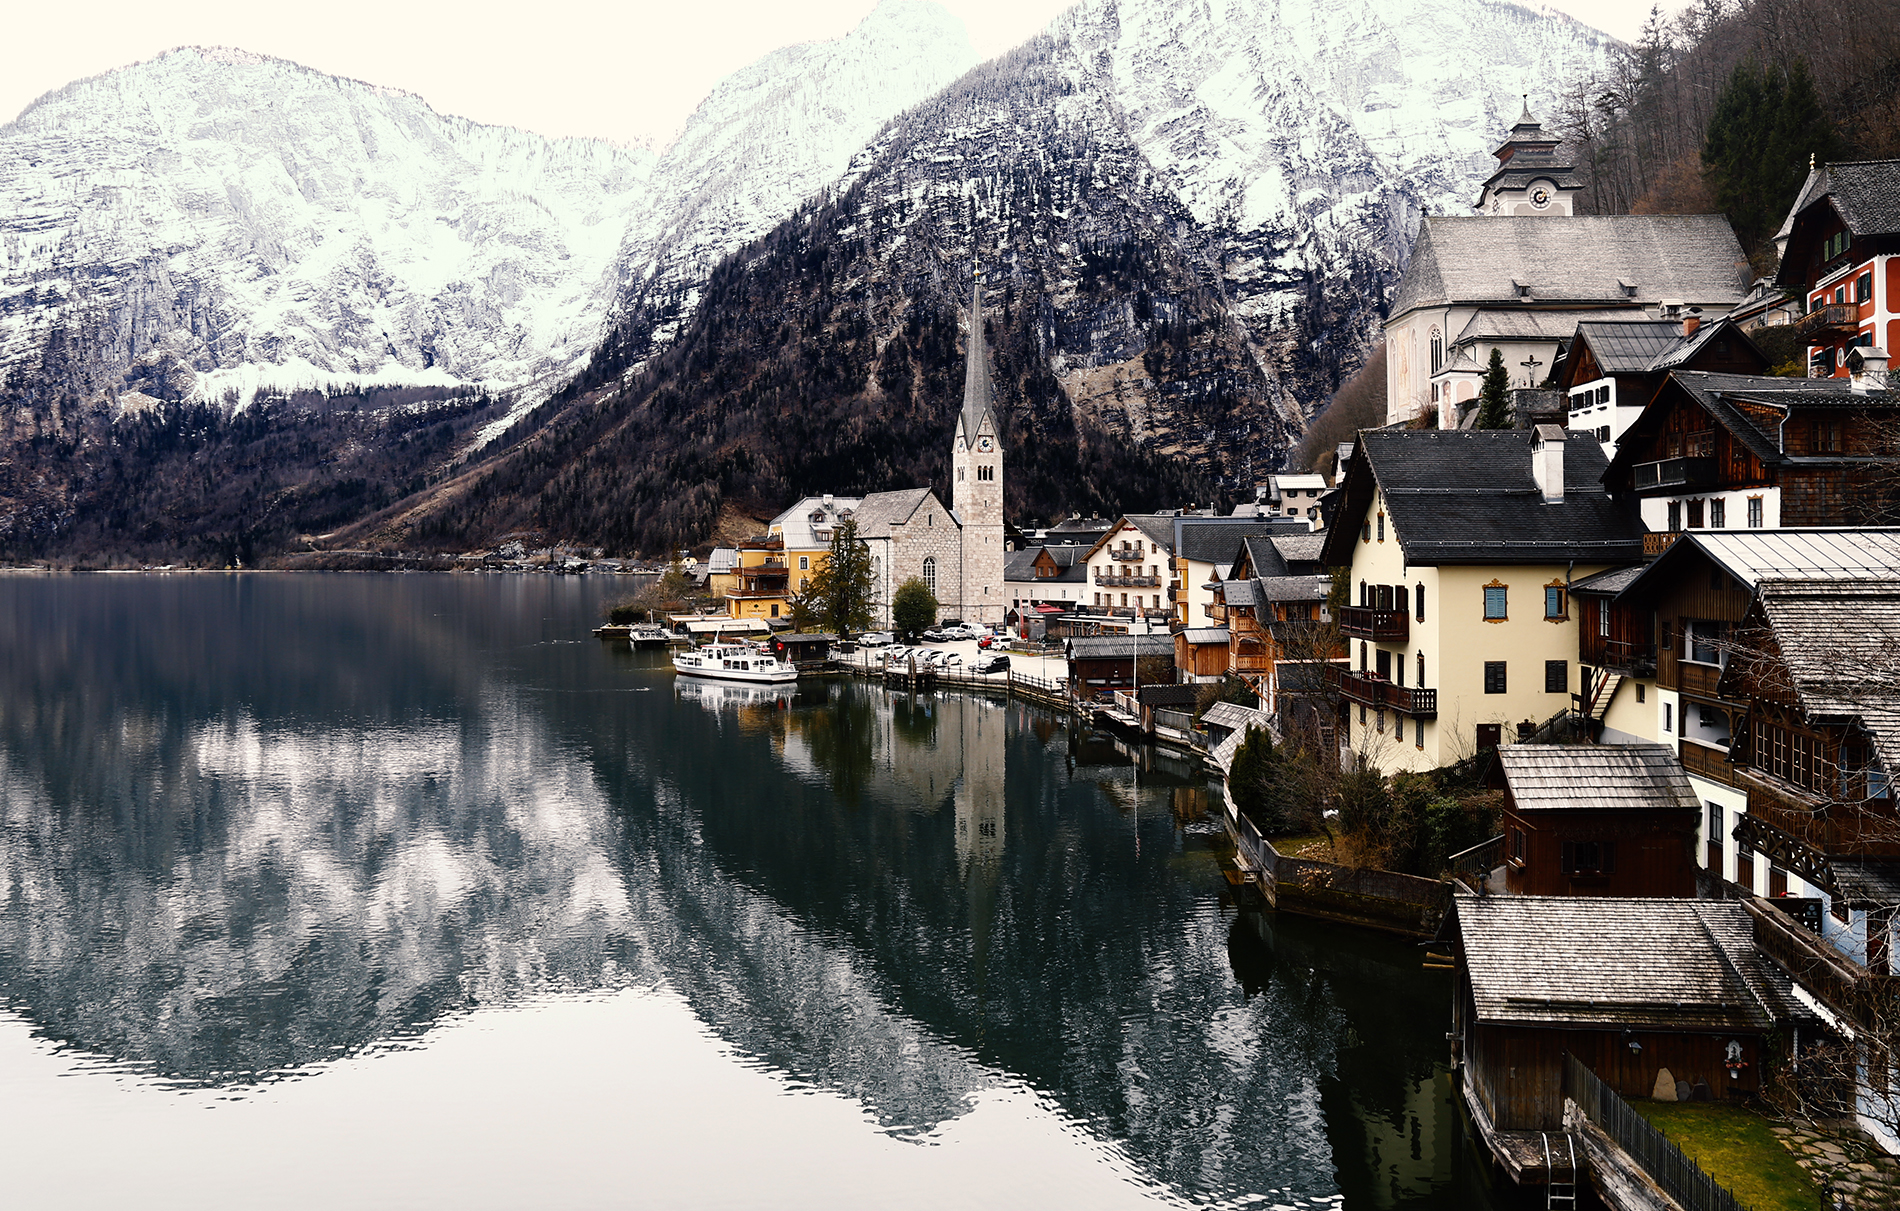 Winter View of Hallstatt, traditional austrian wood village, reflection on the lake